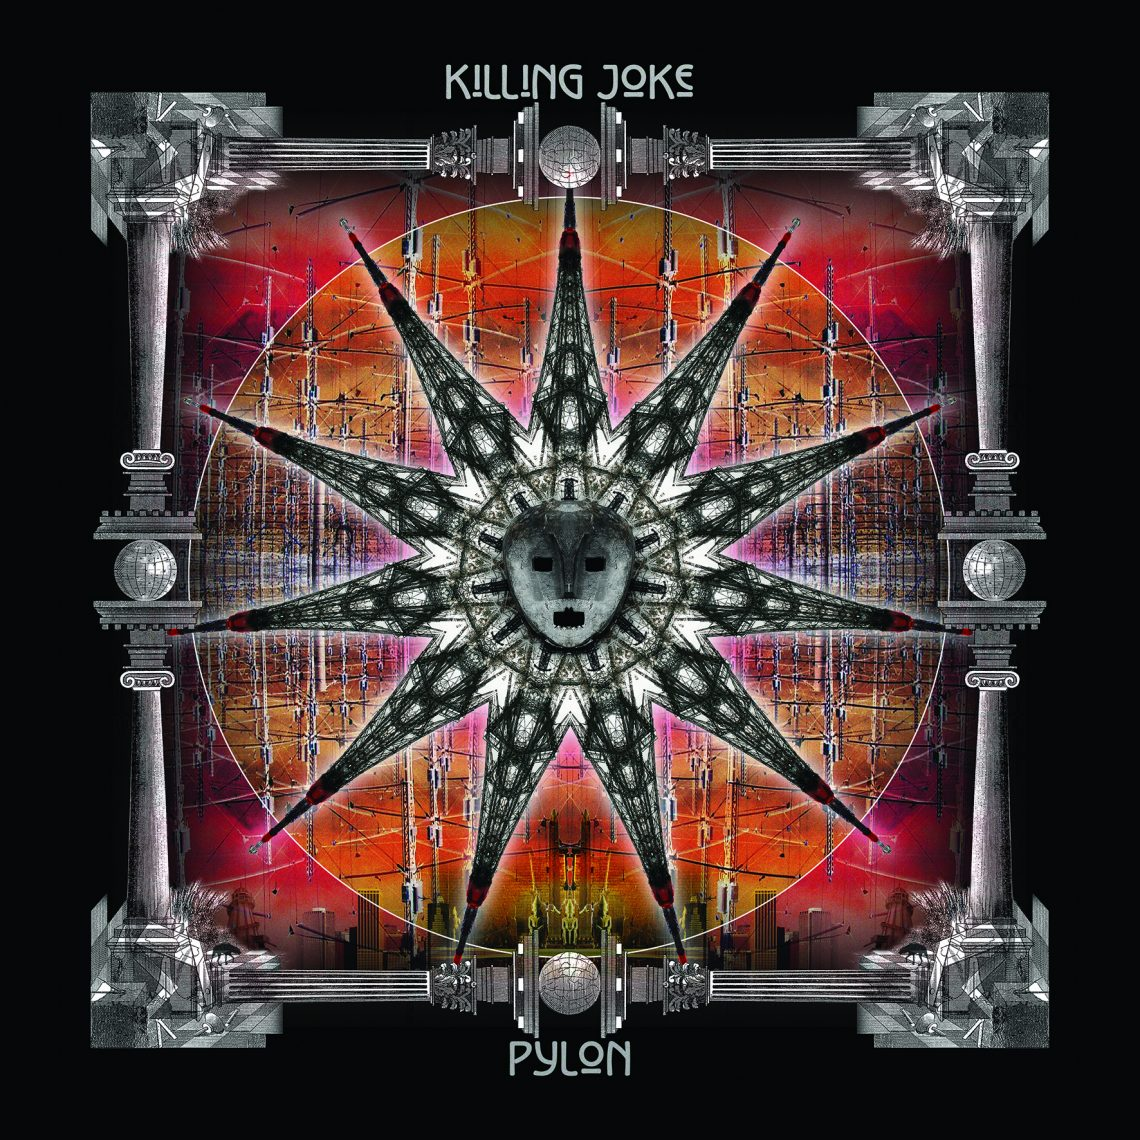 KILLING JOKE new UK headline show just confirmed York Fibbers, November 2nd, part of European tour which includes 'THE GREAT GATHERING' a special London event on November 4th